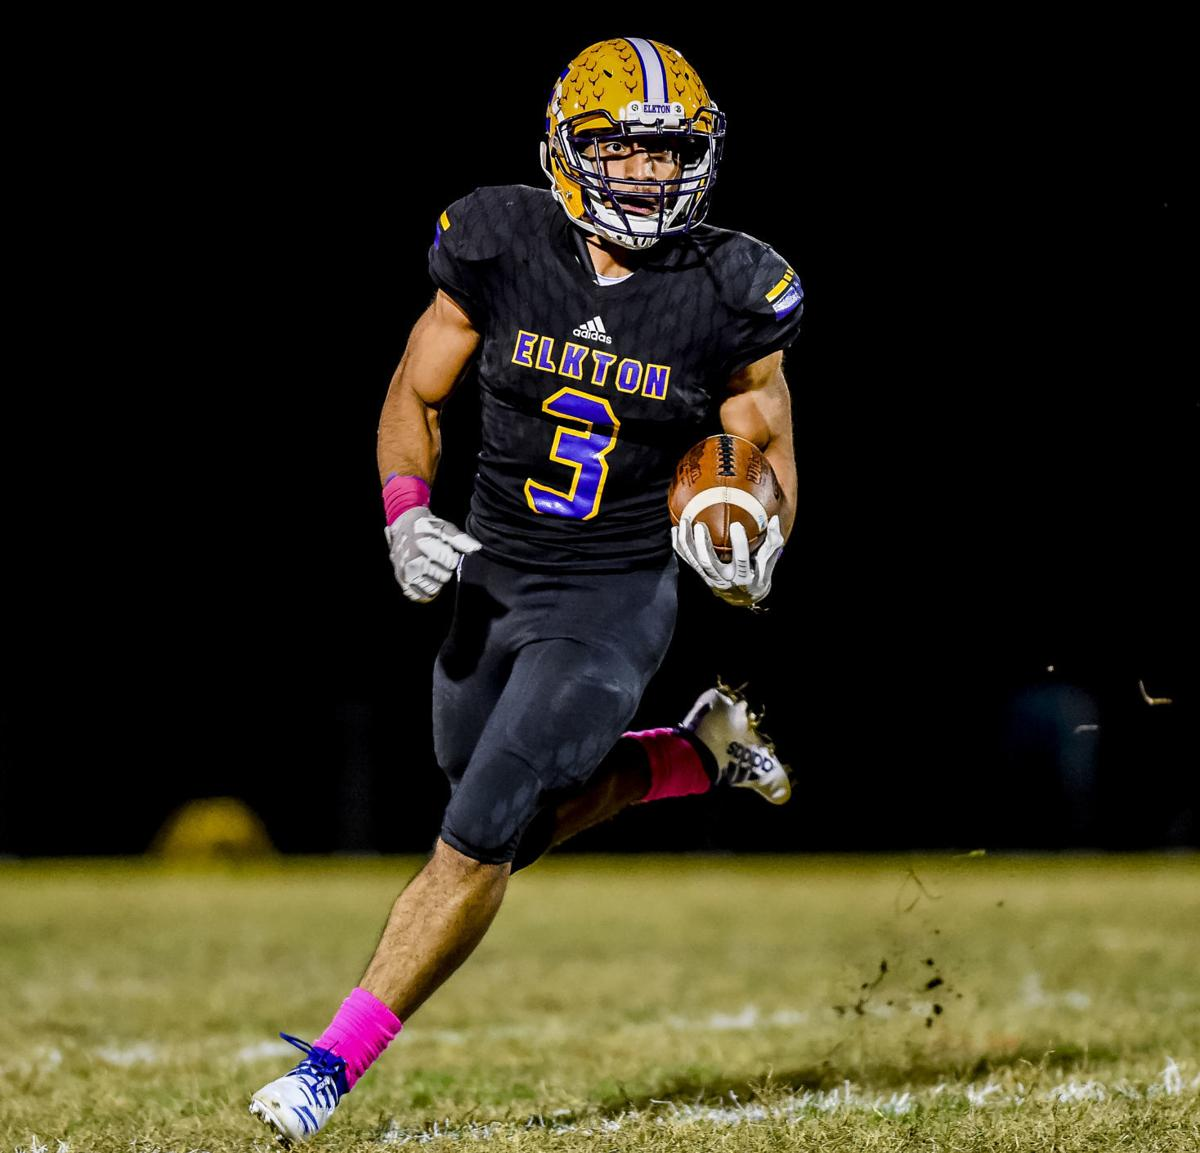 THE WEEKEND BLITZ: No. 8 North East at No. 1 Elkton, 7 tonight